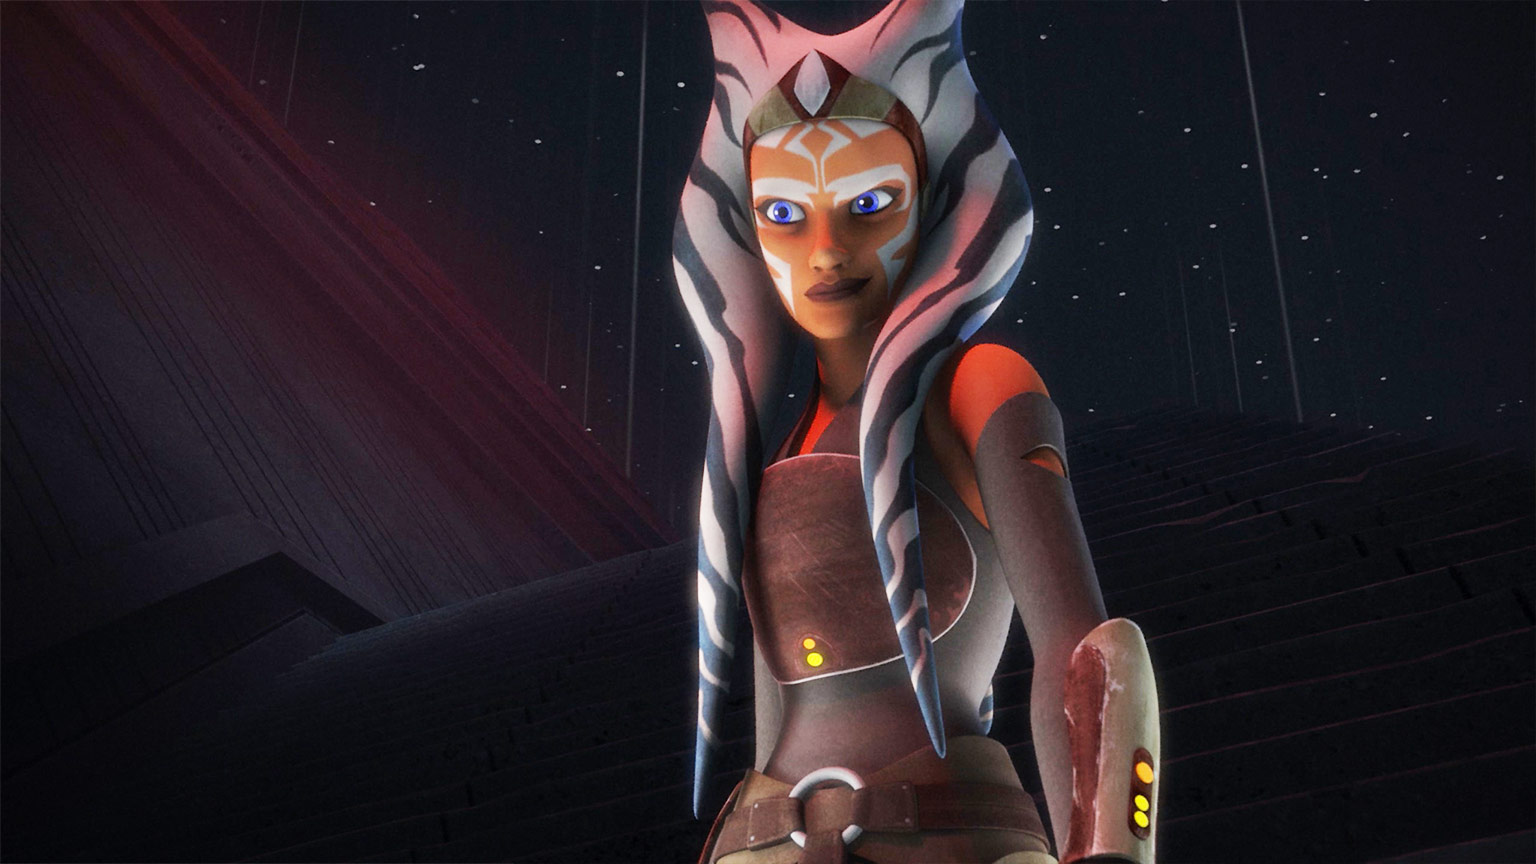 Ahsoka tano images cartoon download